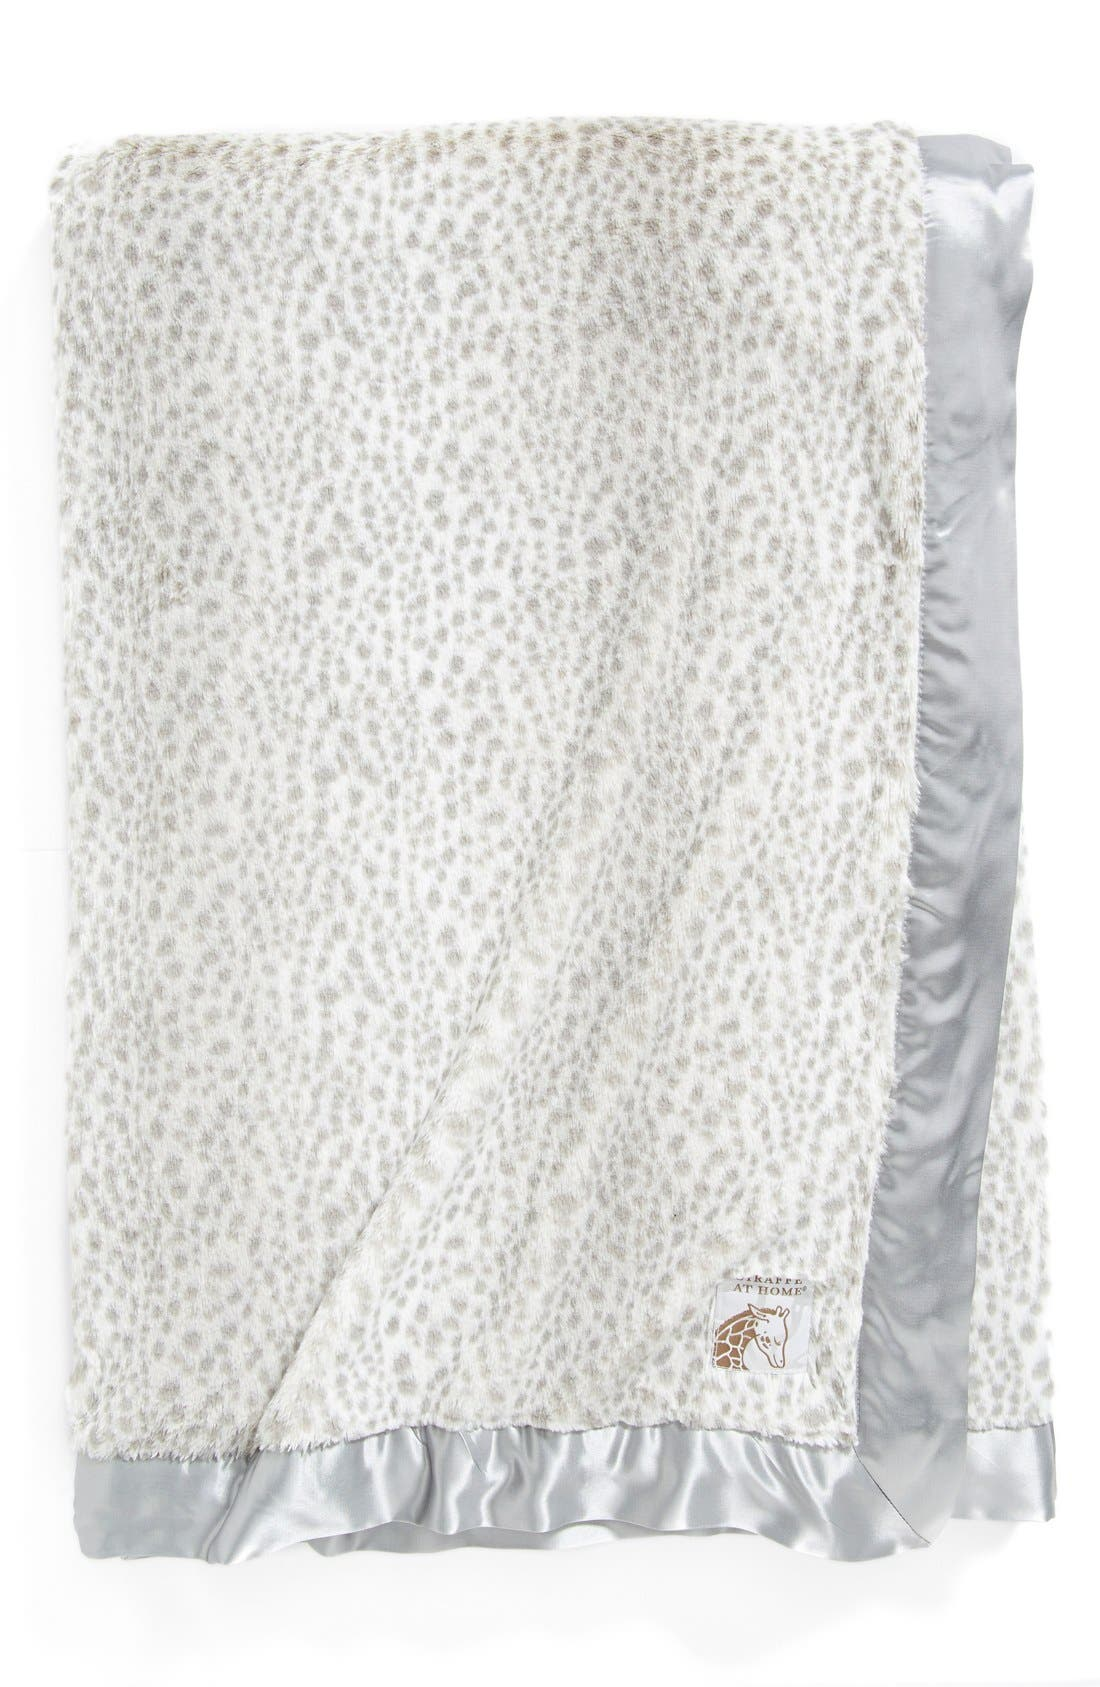 Main Image - Giraffe at Home 'Luxe Snow Leopard - Double' Faux Fur Throw